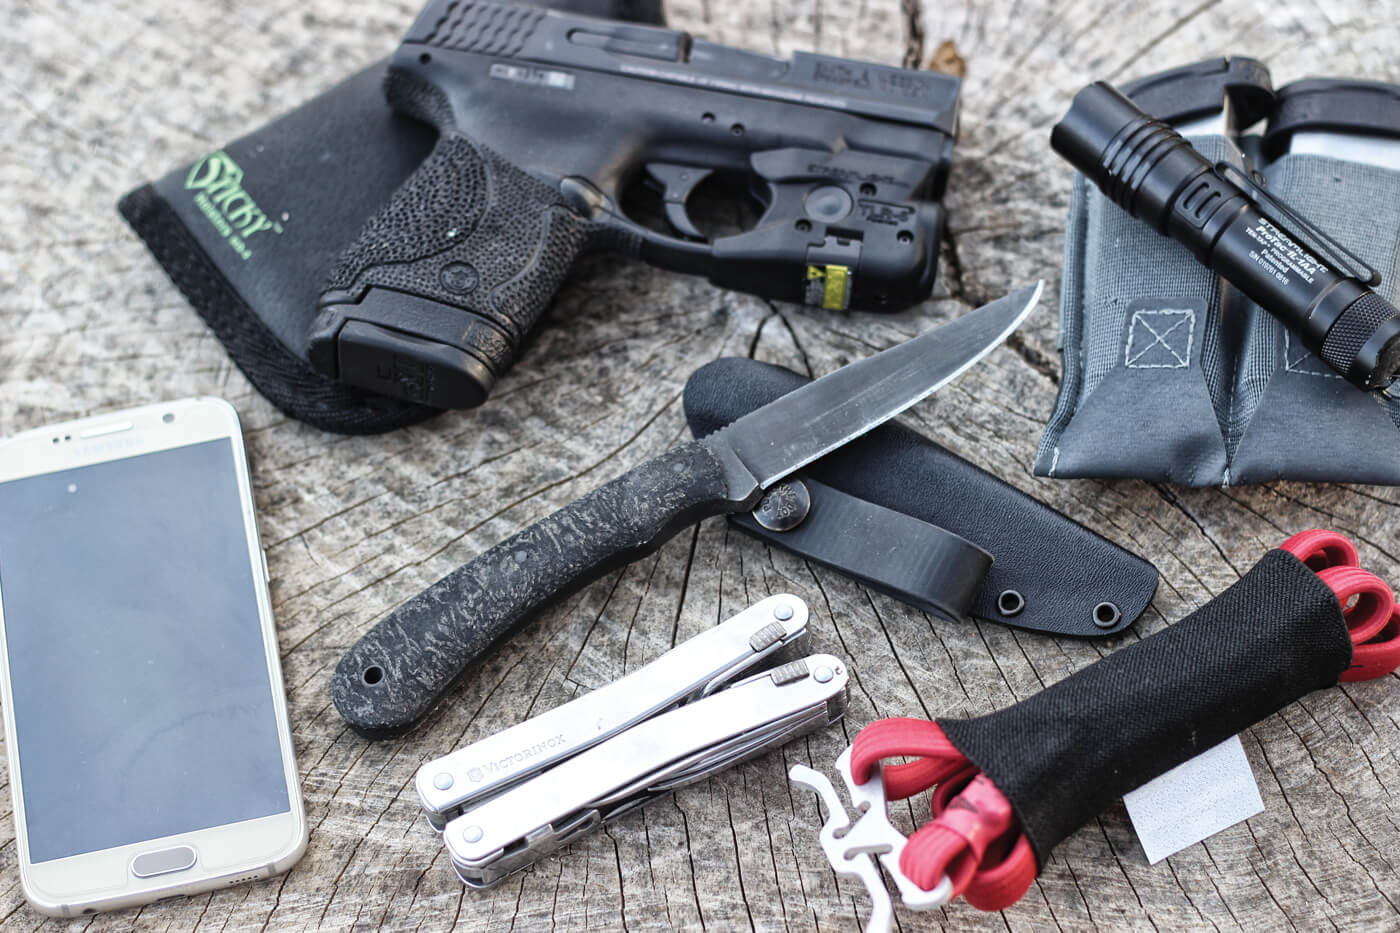 EDC items that include a Smith & Wesson Shield pistol in a Sticky holster, flashlight, spare magazines, cellphone, fixed-blade knife, multi-tool and tourniquets